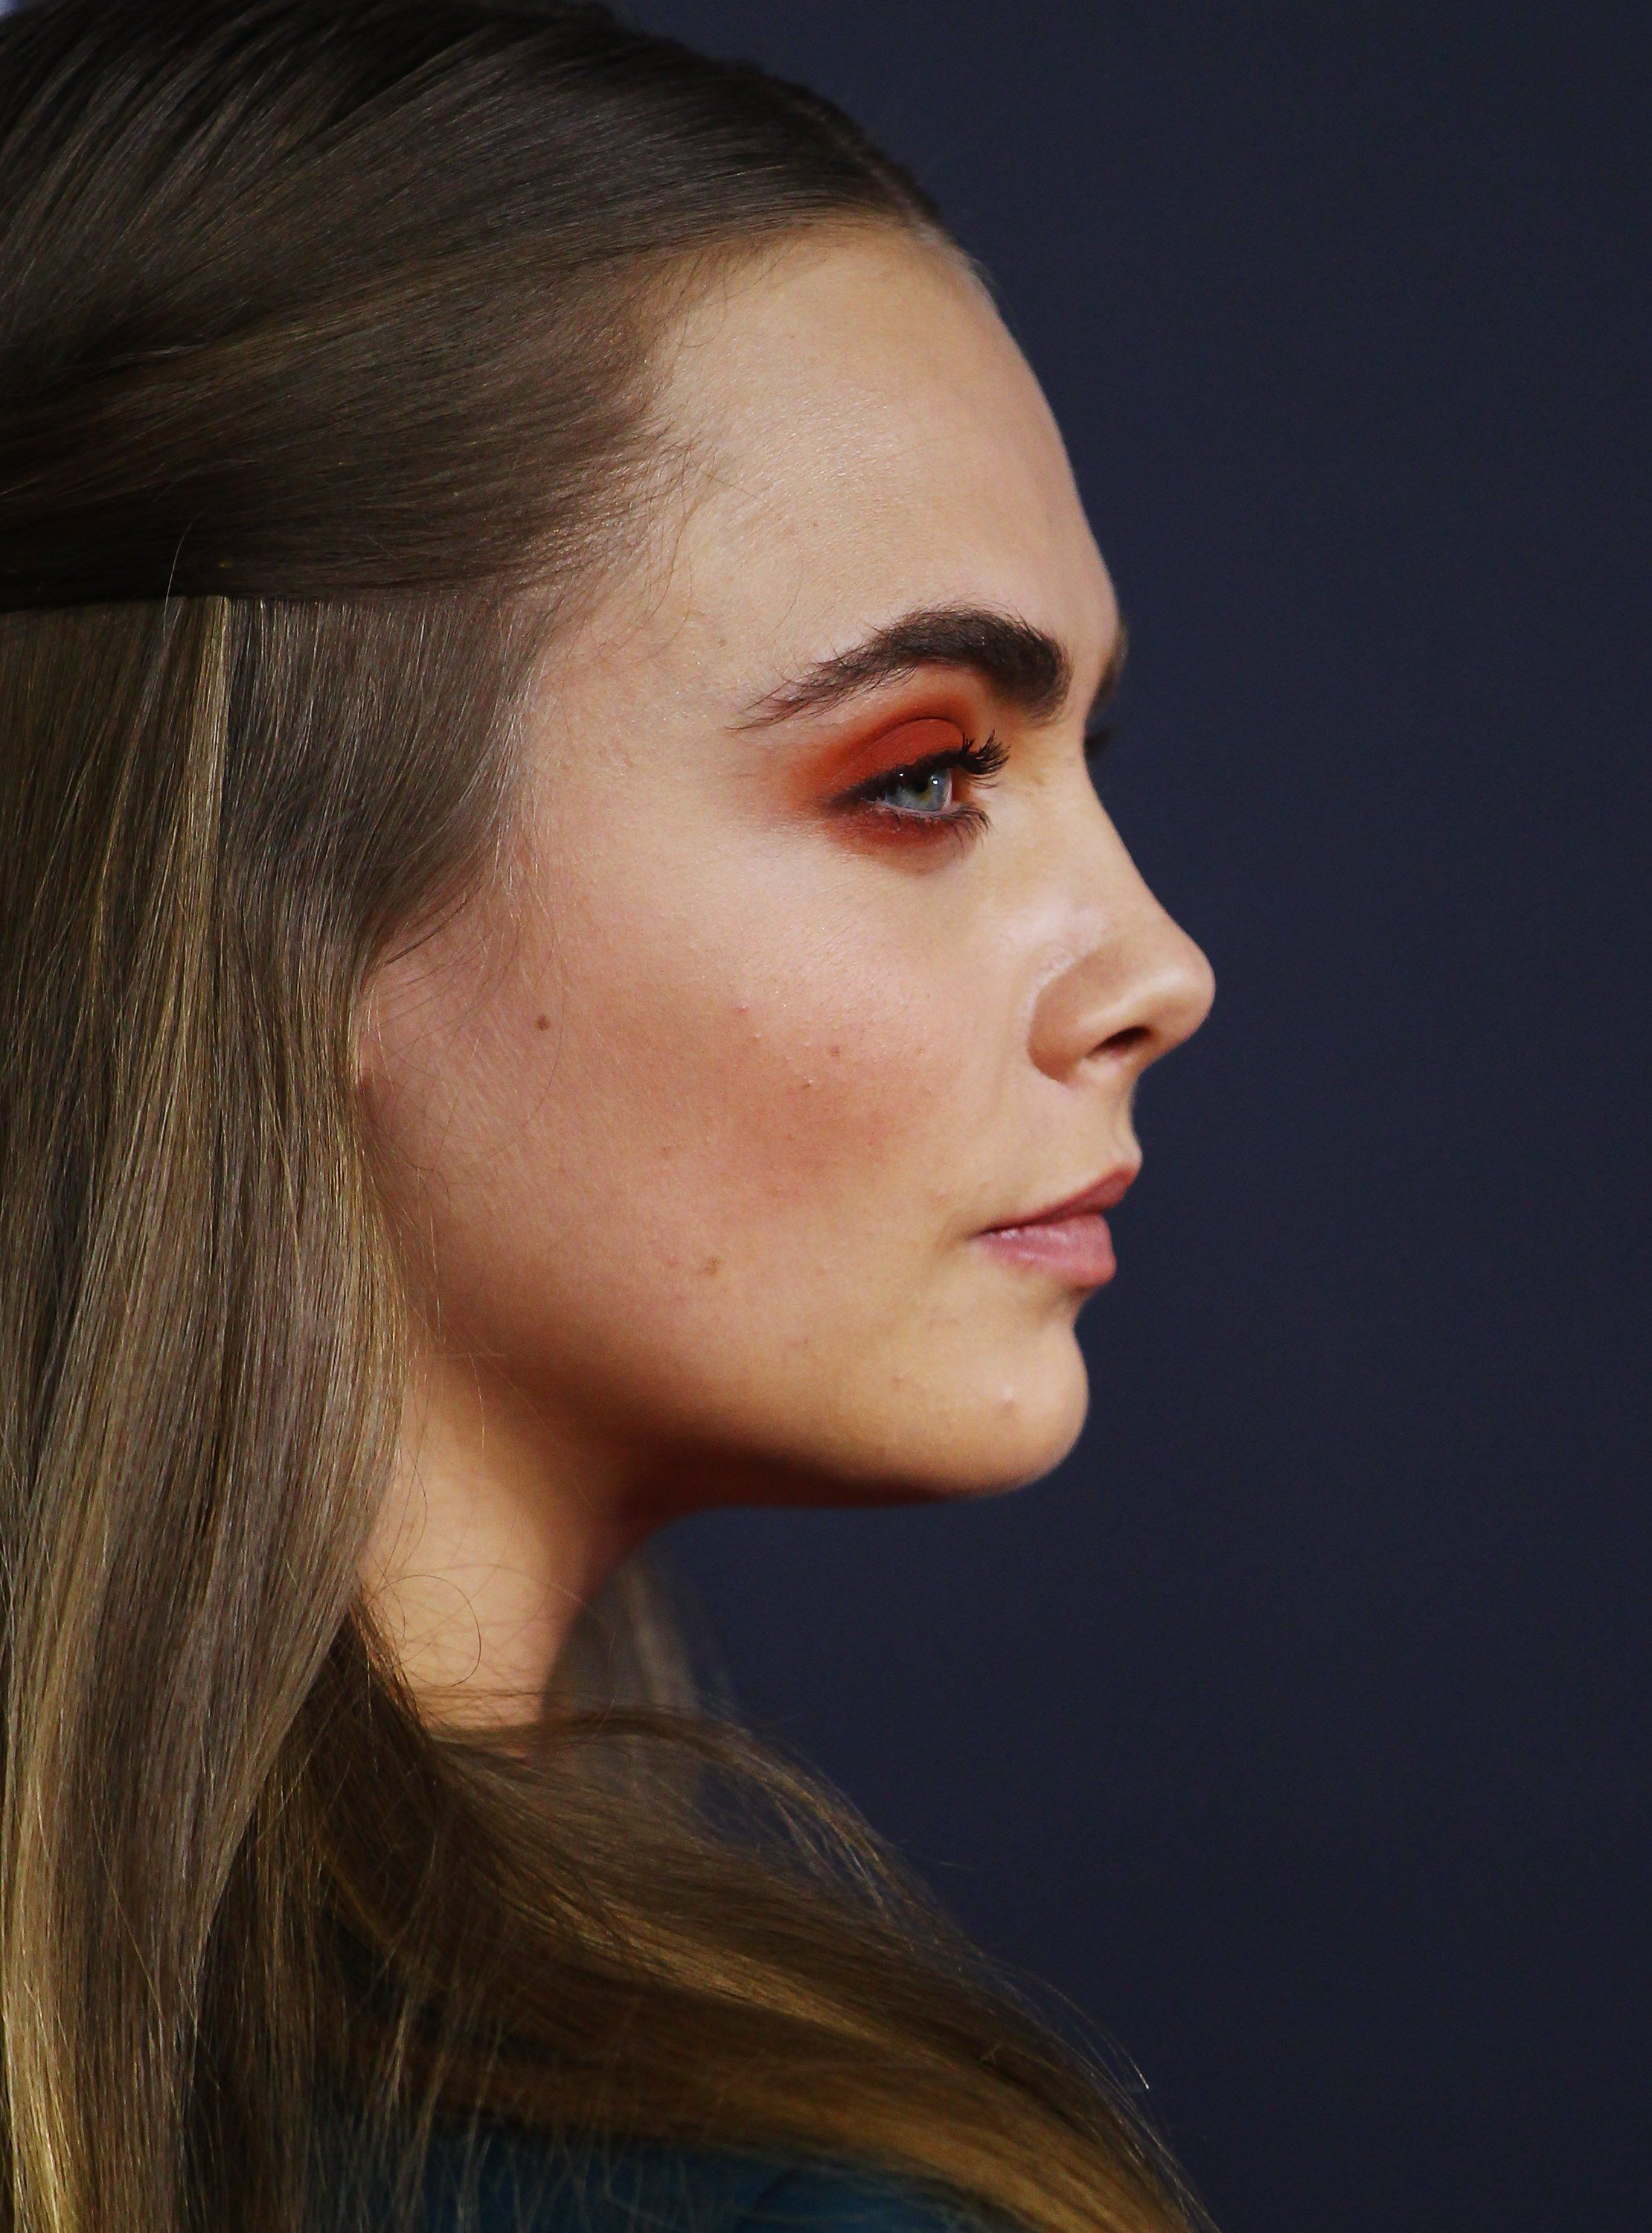 Pin by Piddlehead on Cara delevingne | Cara delevingne